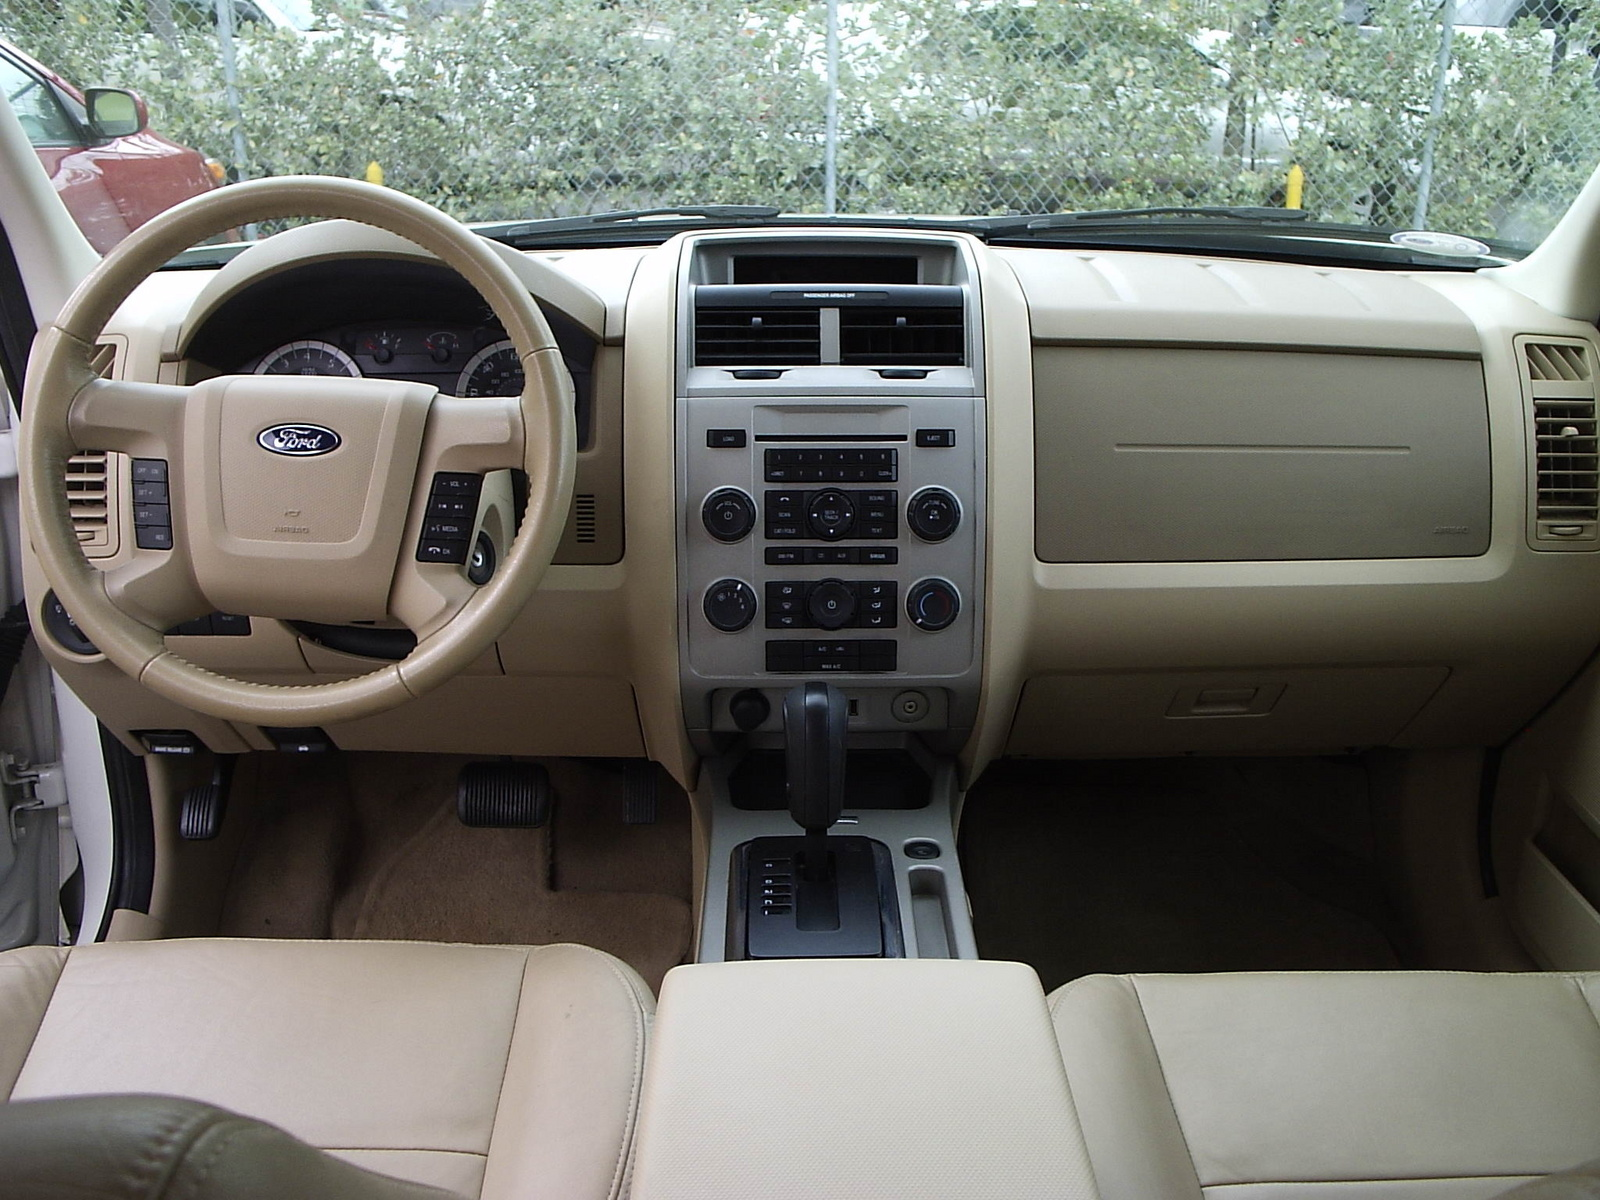 2010 ford escape interior pictures cargurus. Black Bedroom Furniture Sets. Home Design Ideas